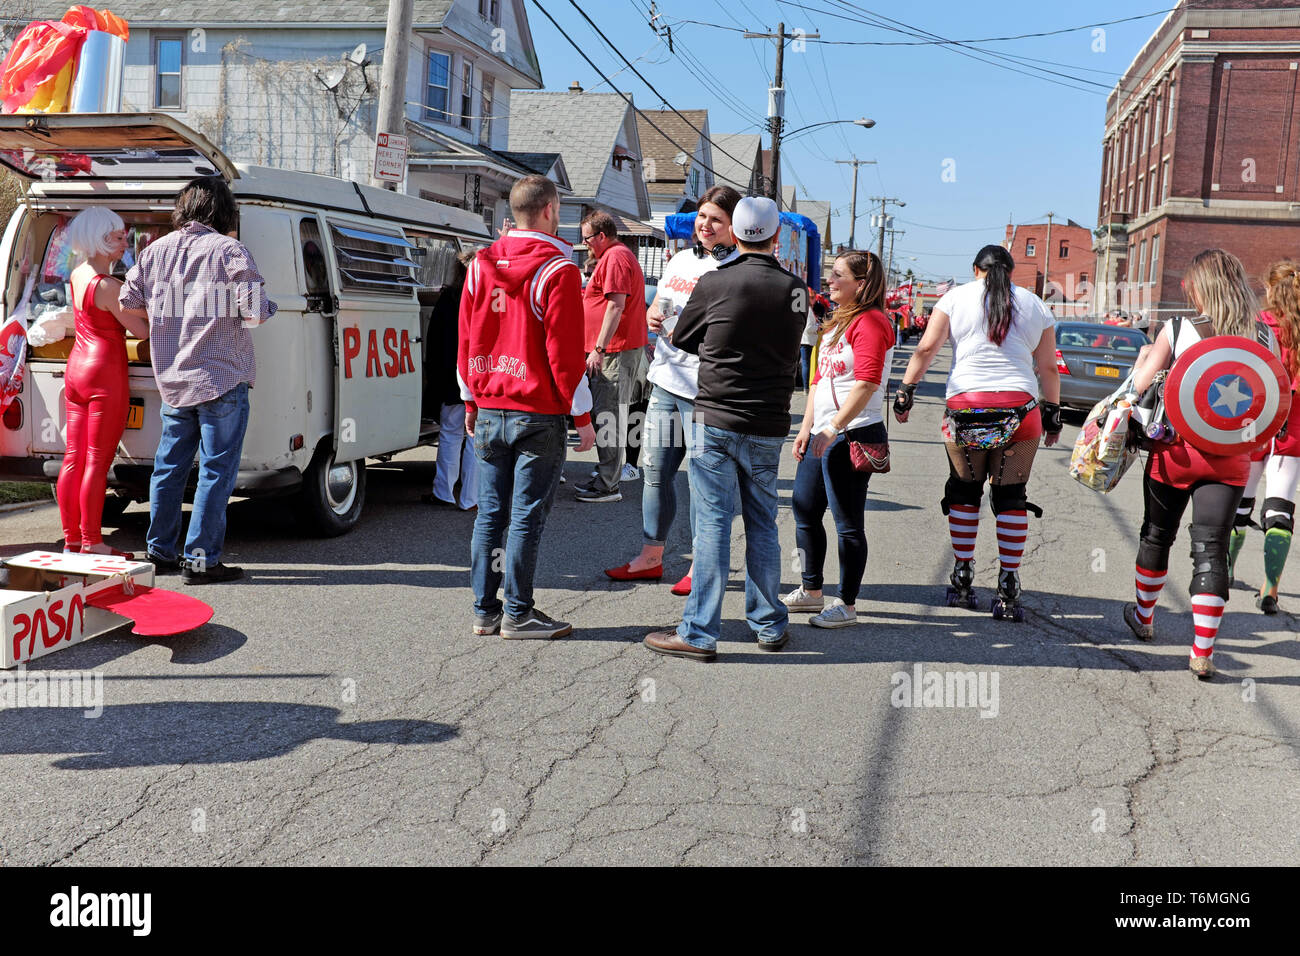 Participants in the 2019 Dyngus Day parade in Buffalo, New York make preparations on the street in the Polonia neighborhood. - Stock Image